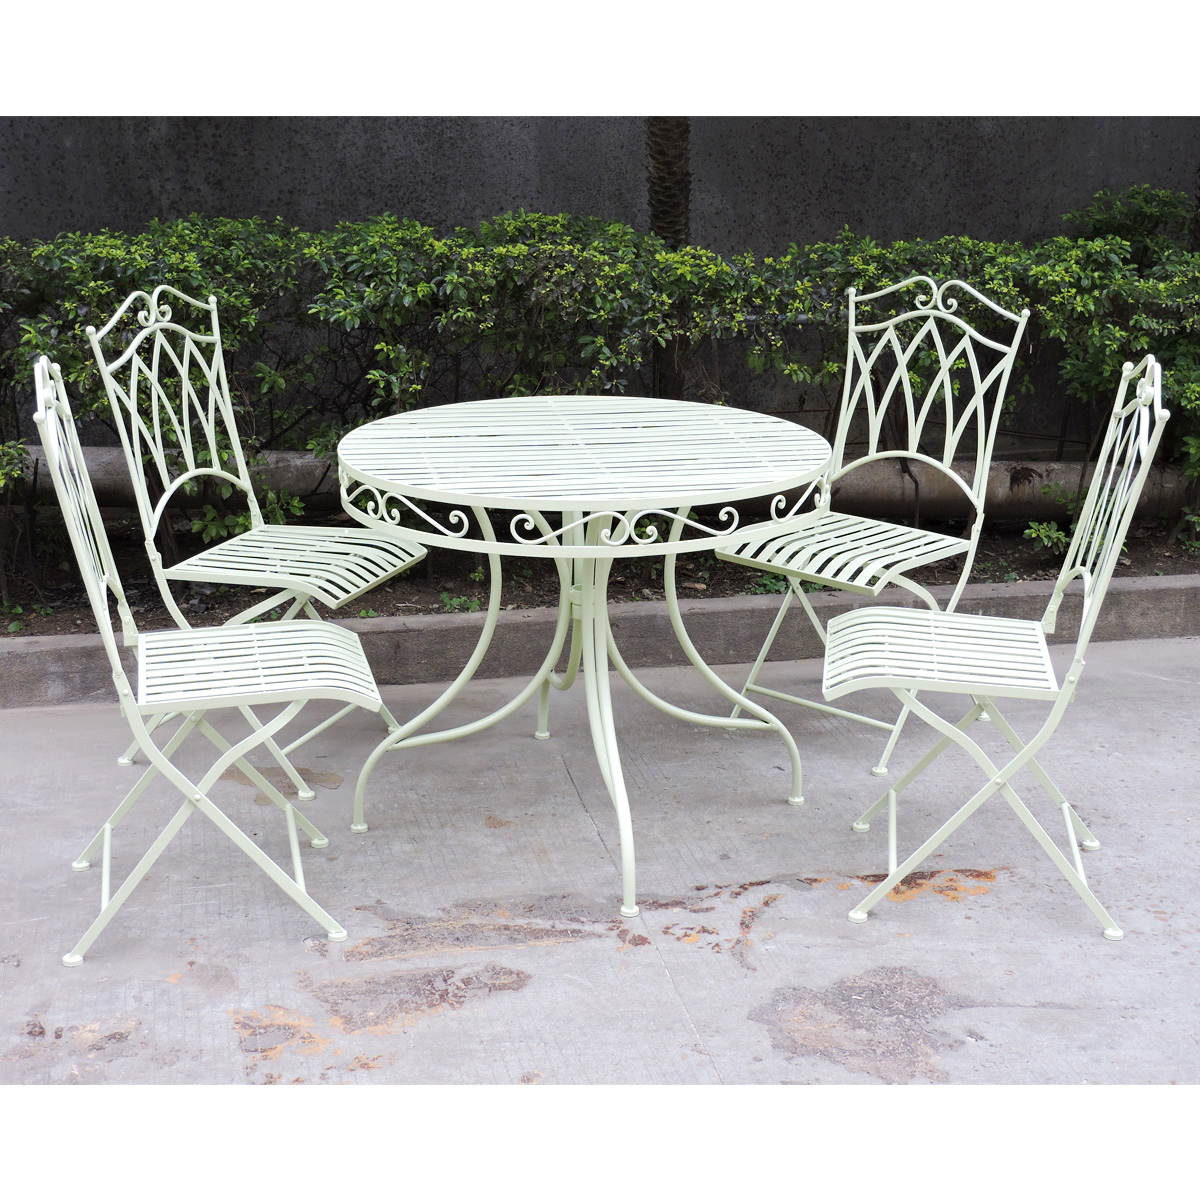 Charles Bentley Garden 5 Piece Wrought Iron furniture Set ...